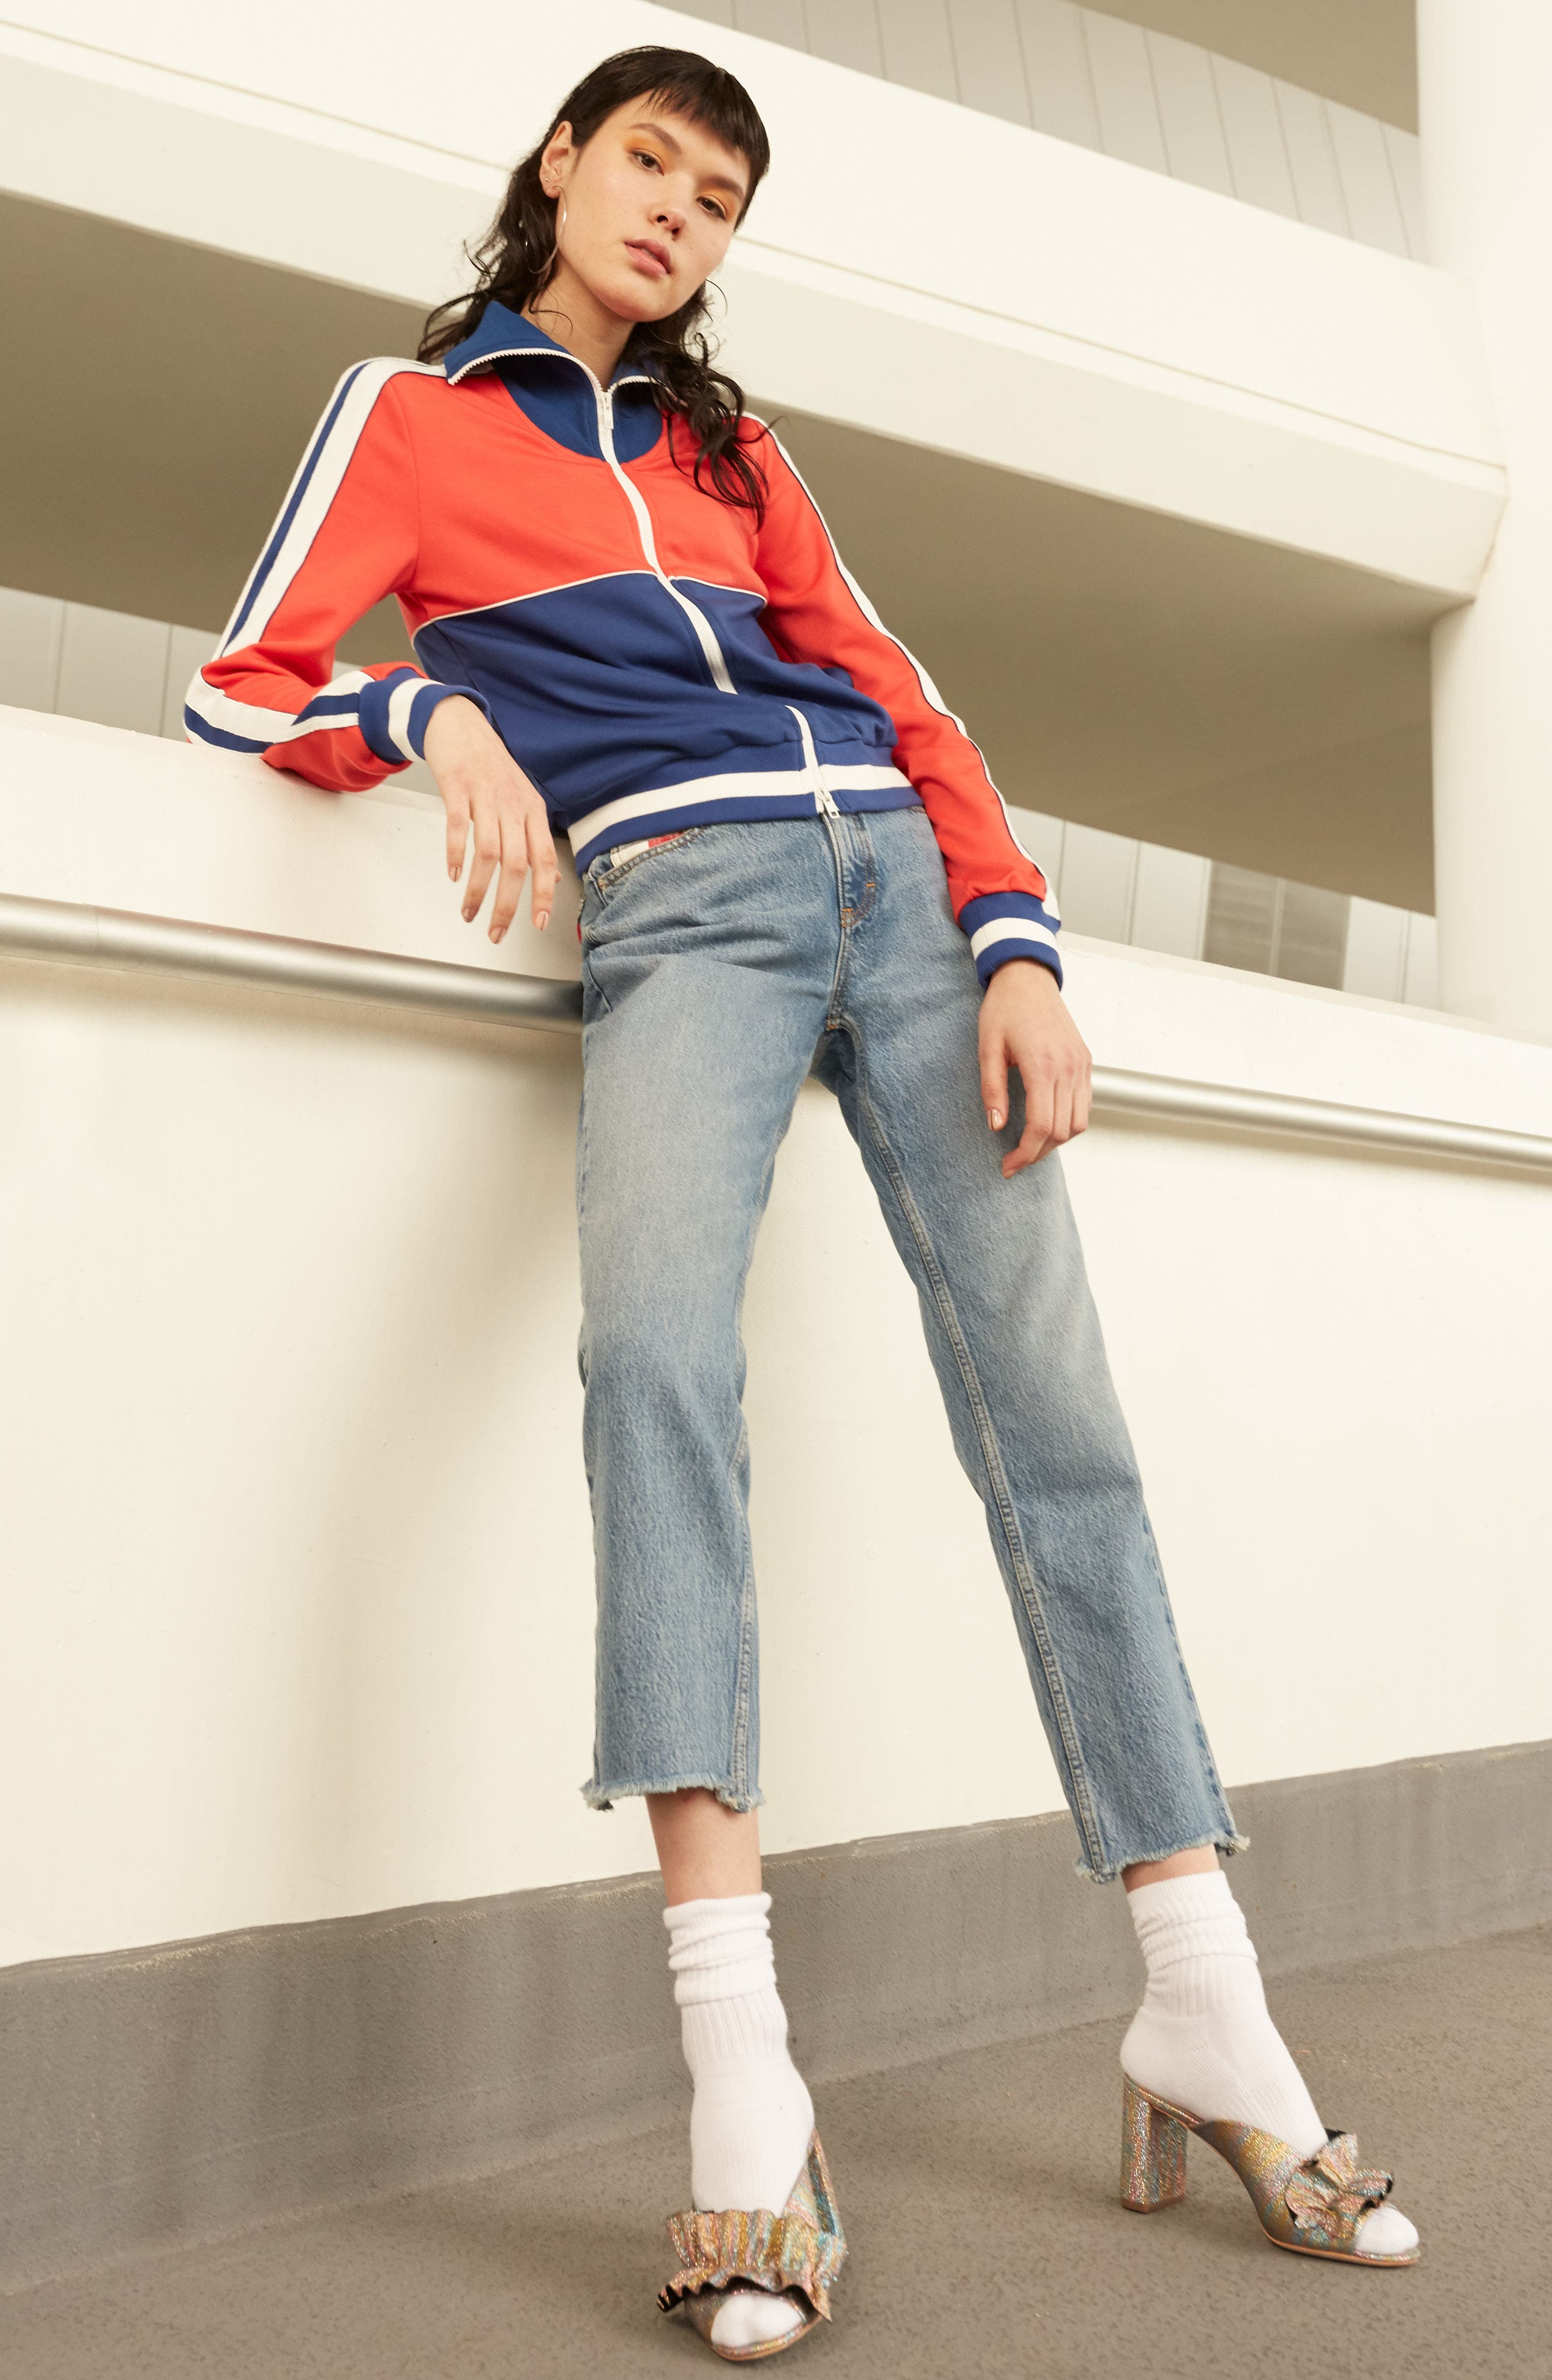 TOMMY JEANS,                             TJW 90s Mom Jeans,                             Alternate thumbnail 8, color,                             401